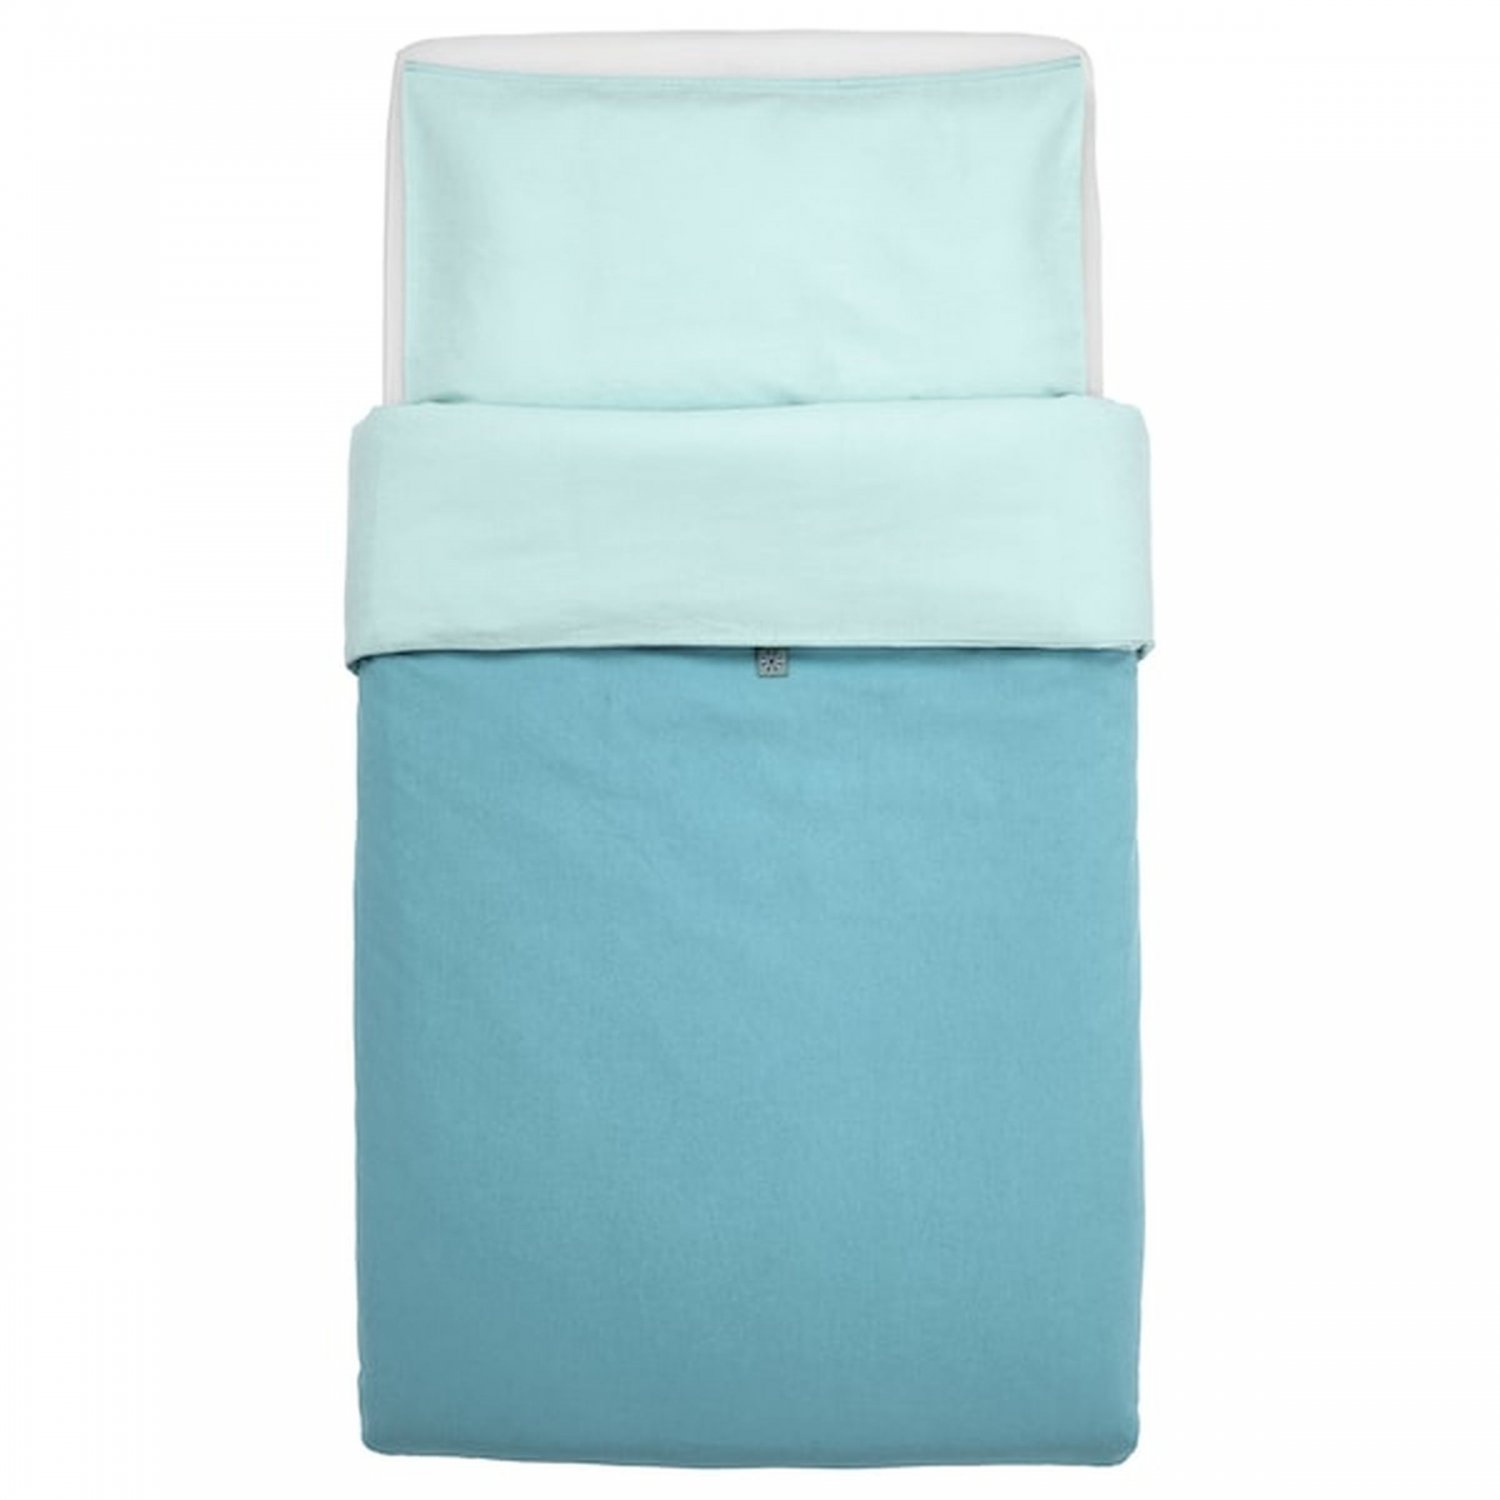 IKEA Tillgiven Turquoise Blue CRIB Duvet COVER Pillowcase SET Nursery Bedding Unisex Tiffany Teal